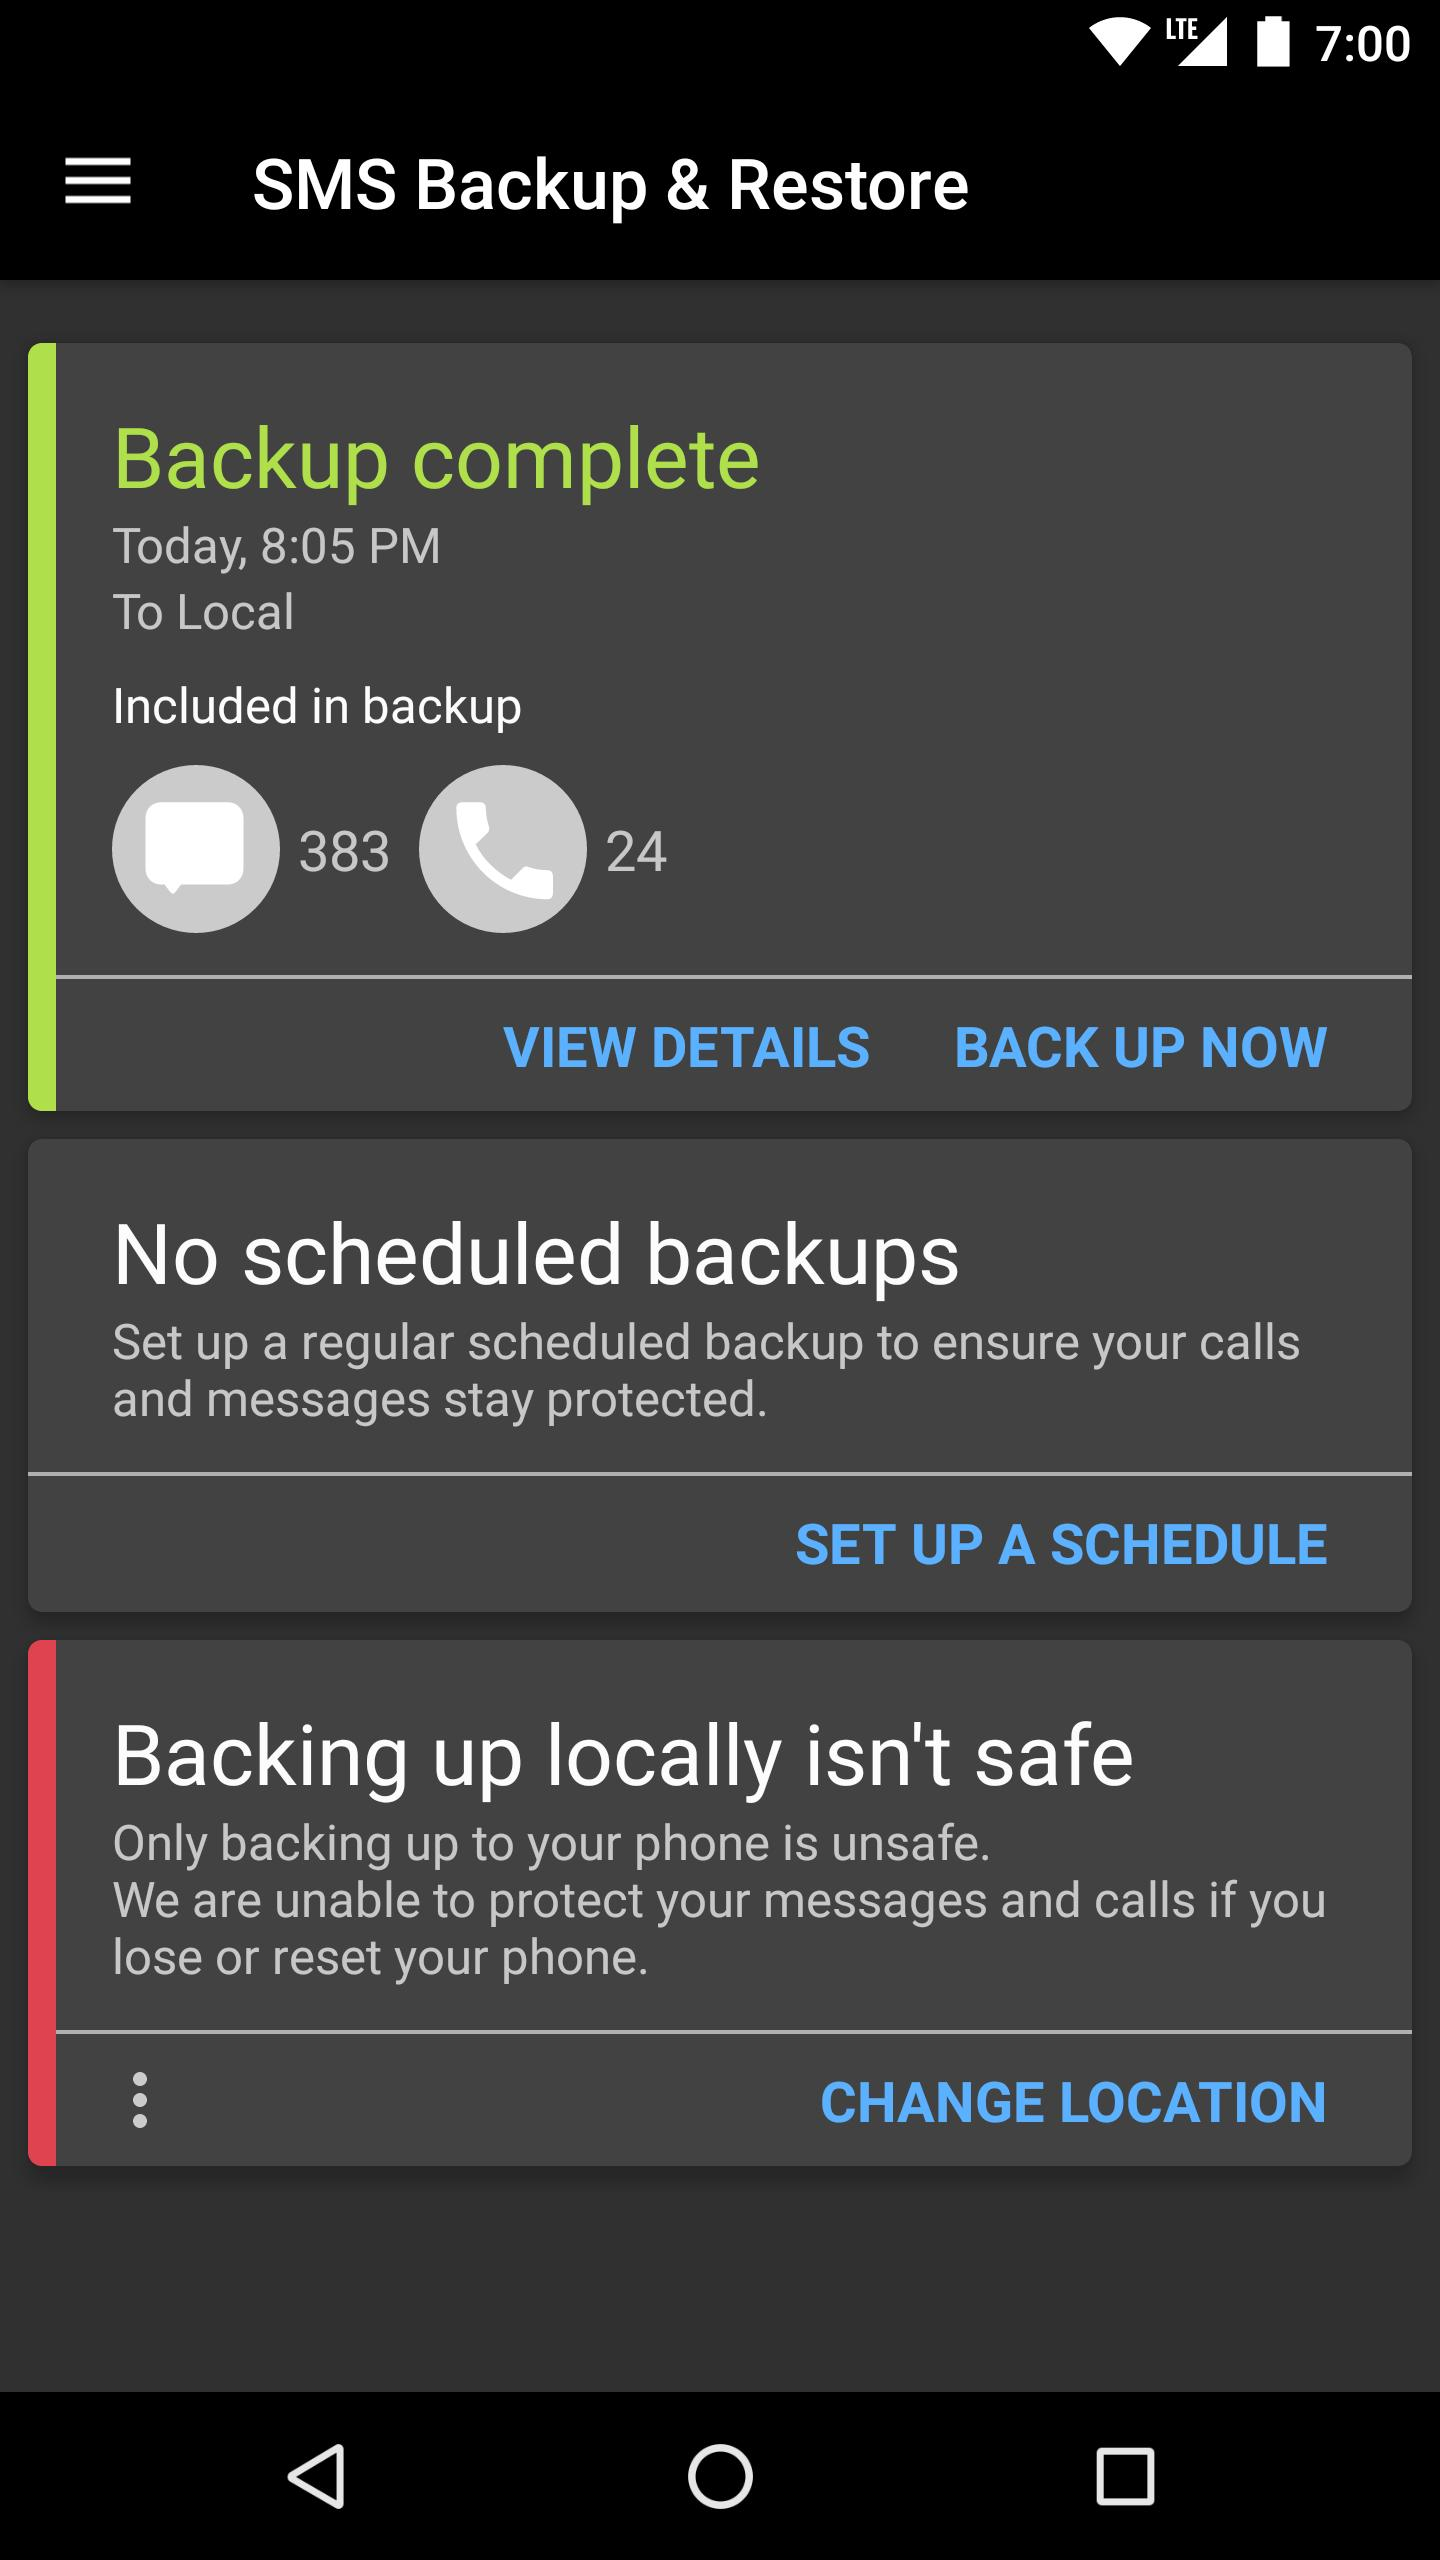 SMS Backup & Restore for Android - APK Download